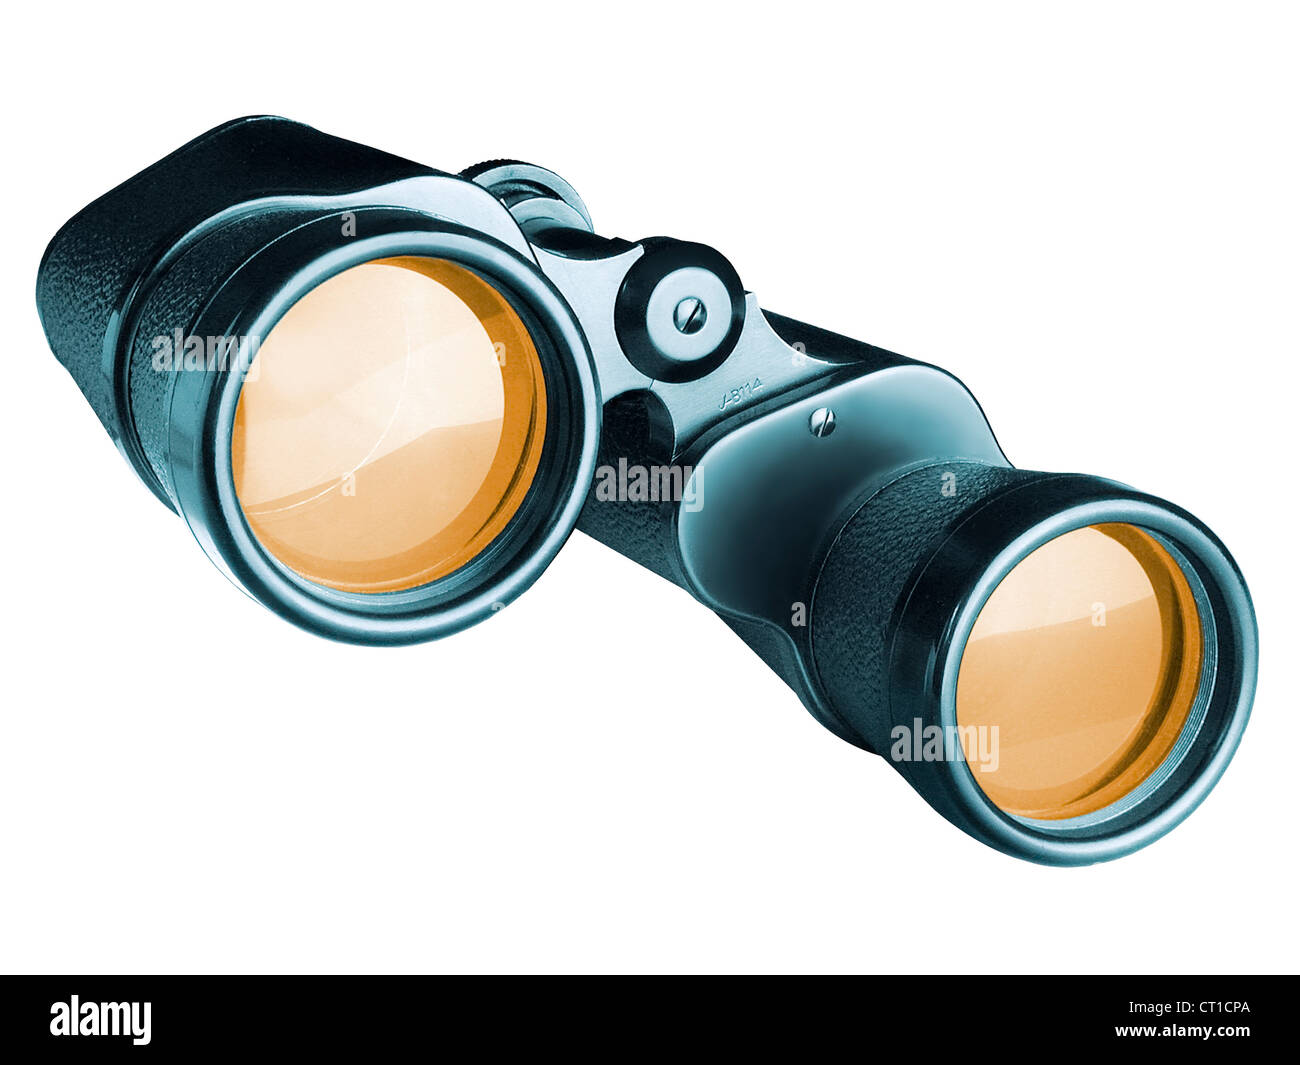 Binoculars on white background - Stock Image